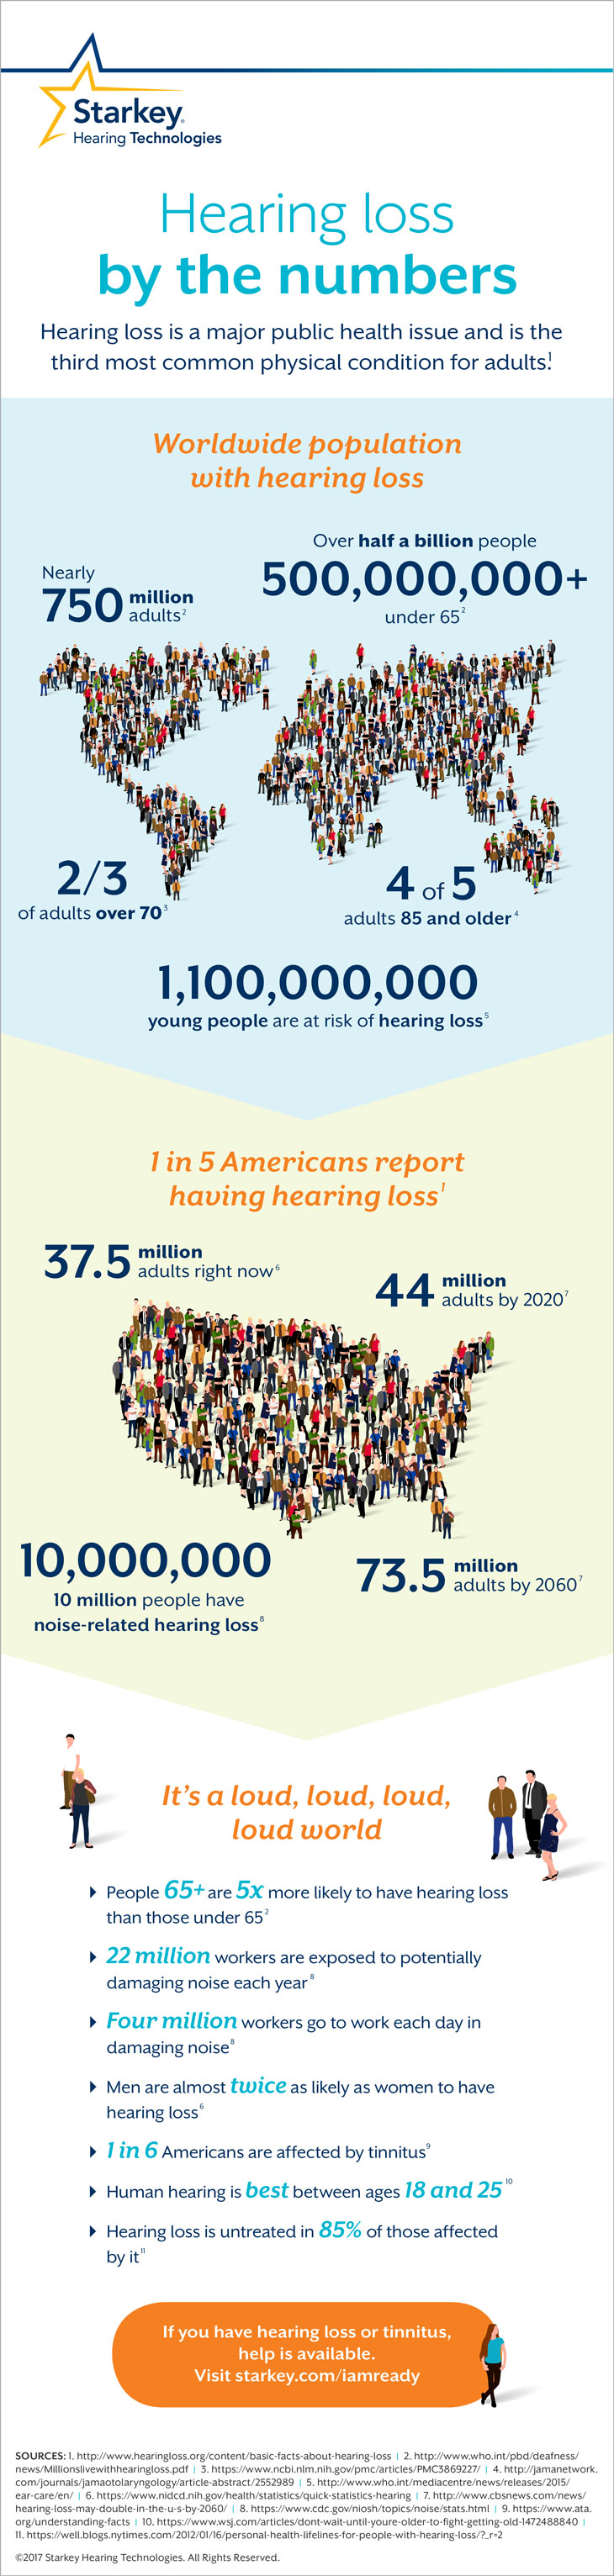 Hearing loss by the numbers. According to the latest figures, there are enough Americans with hearing loss to replace the entire population of California and still overflow into parts of Texas.